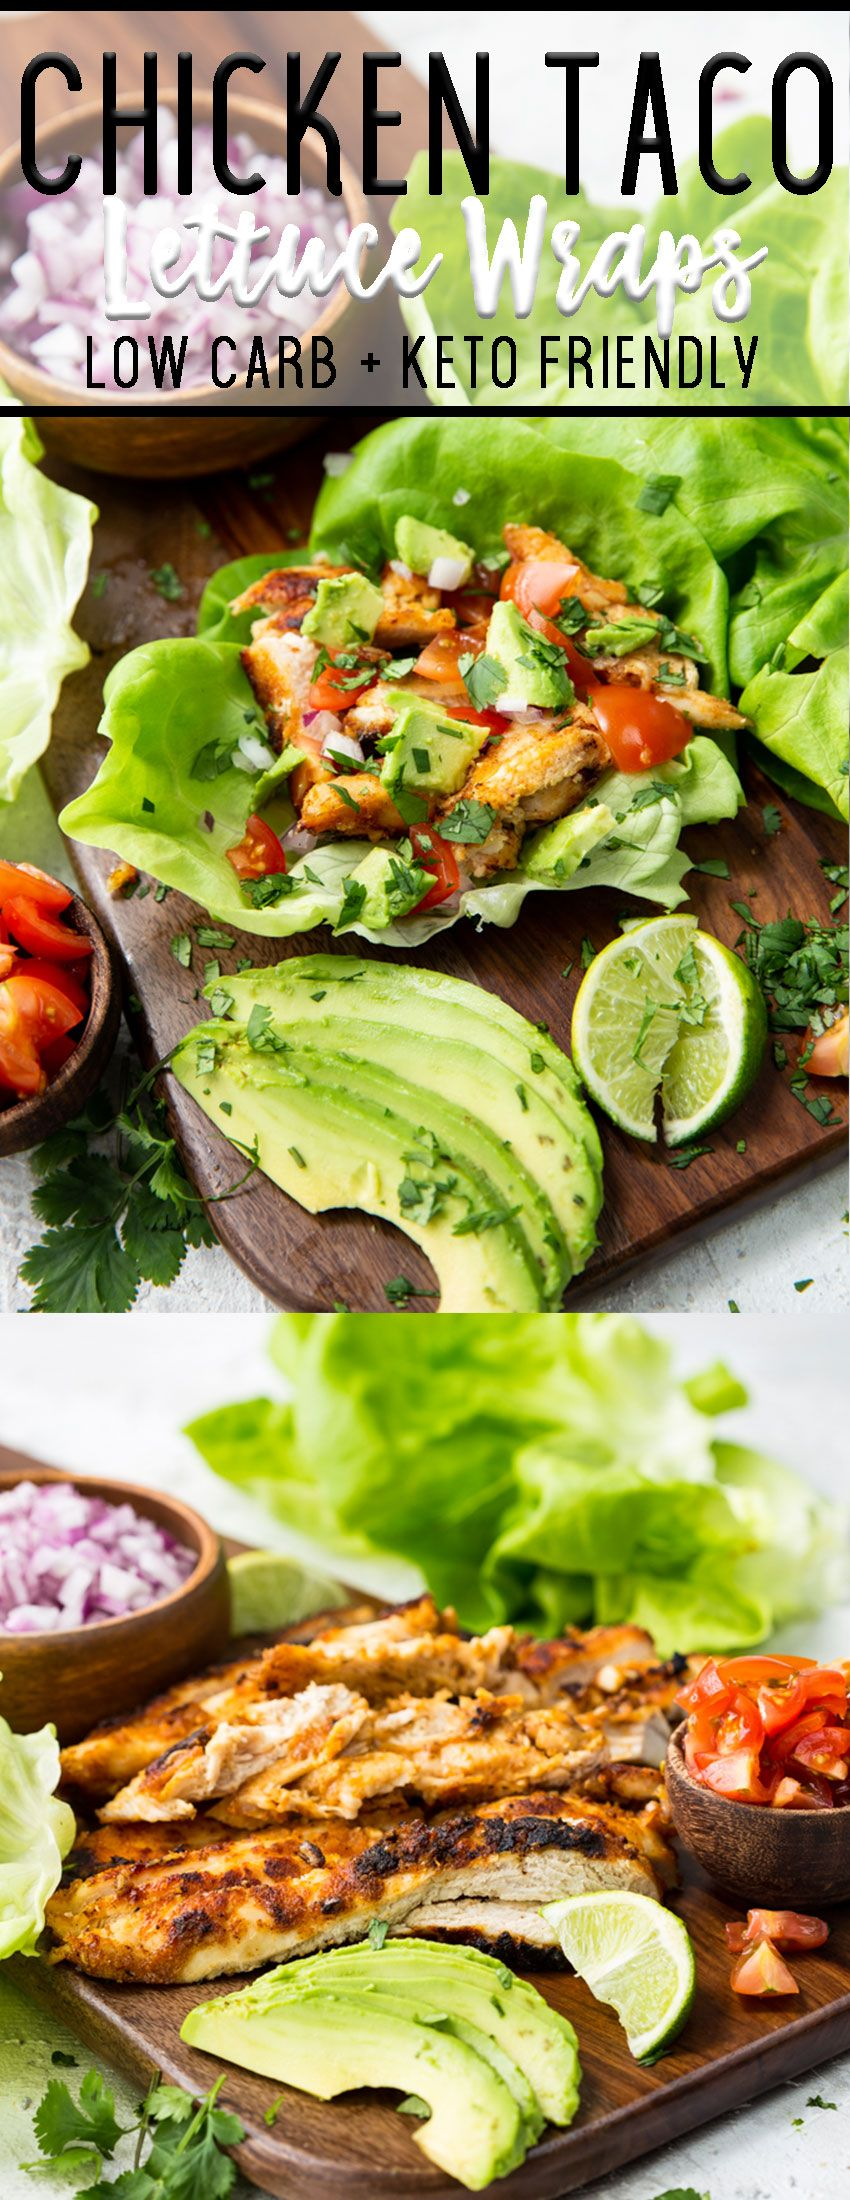 Chicken taco lettuce wraps images